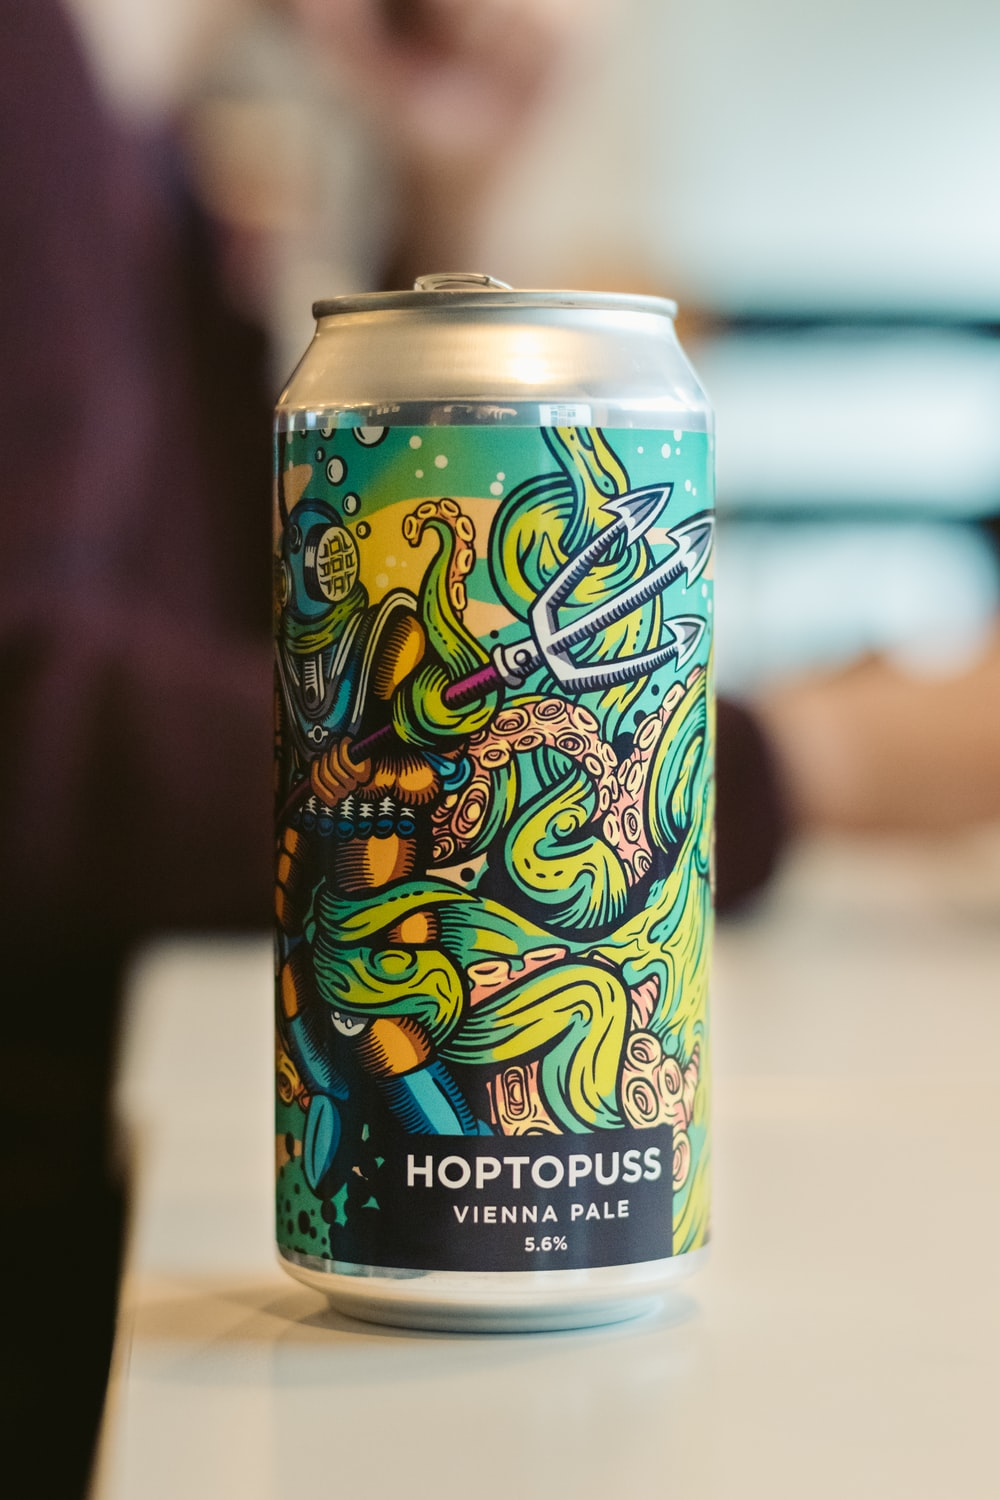 Hoptopuss can